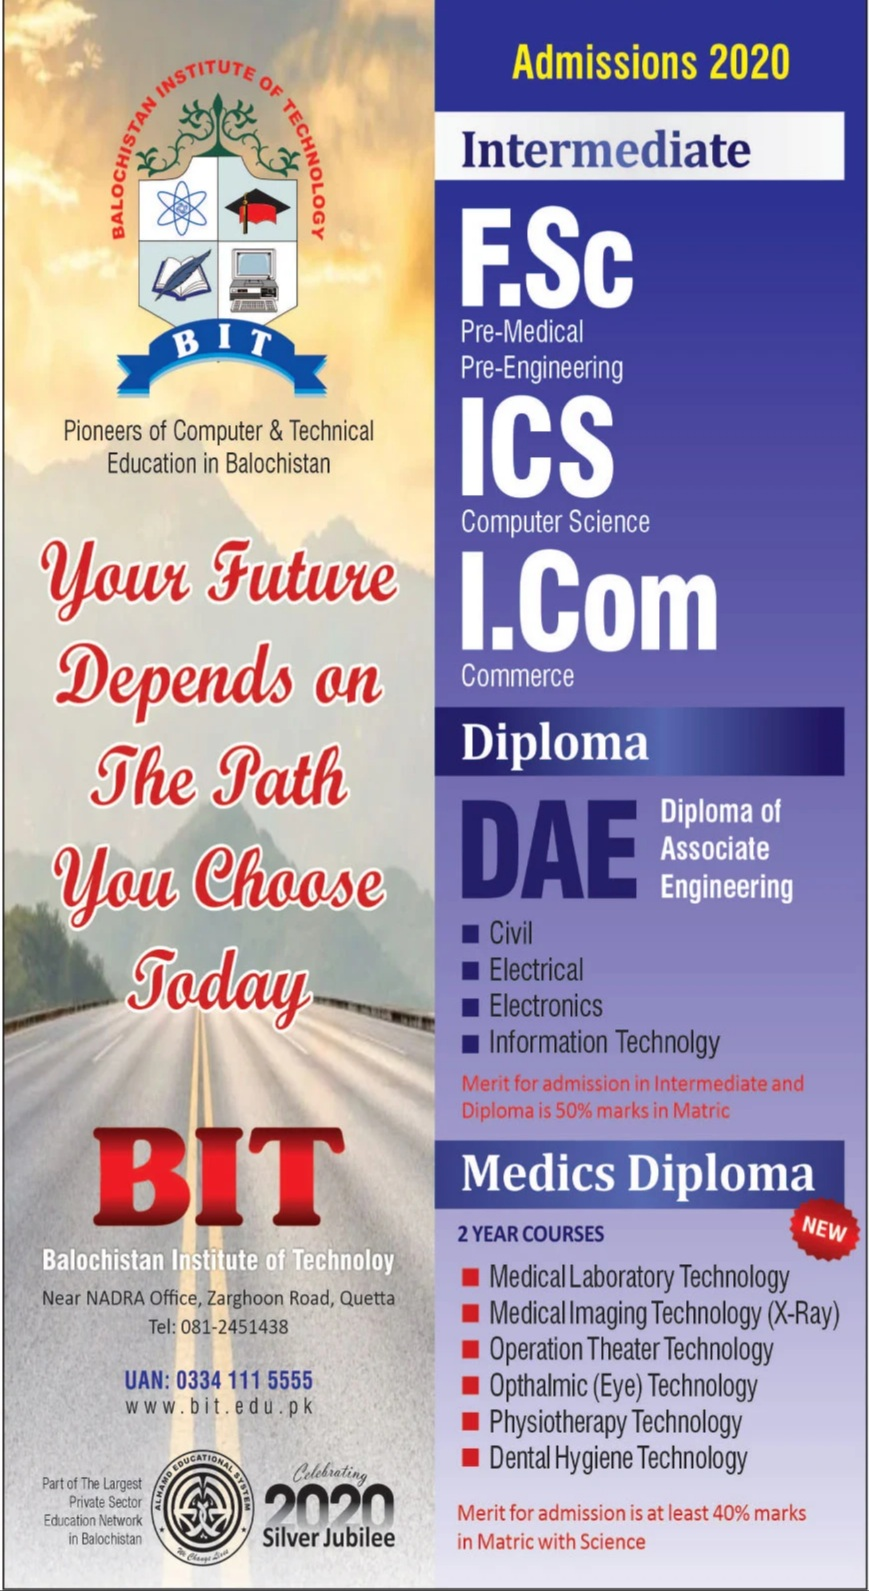 Balochistan institute of Technology (BIT) Admissions 2020 Latest